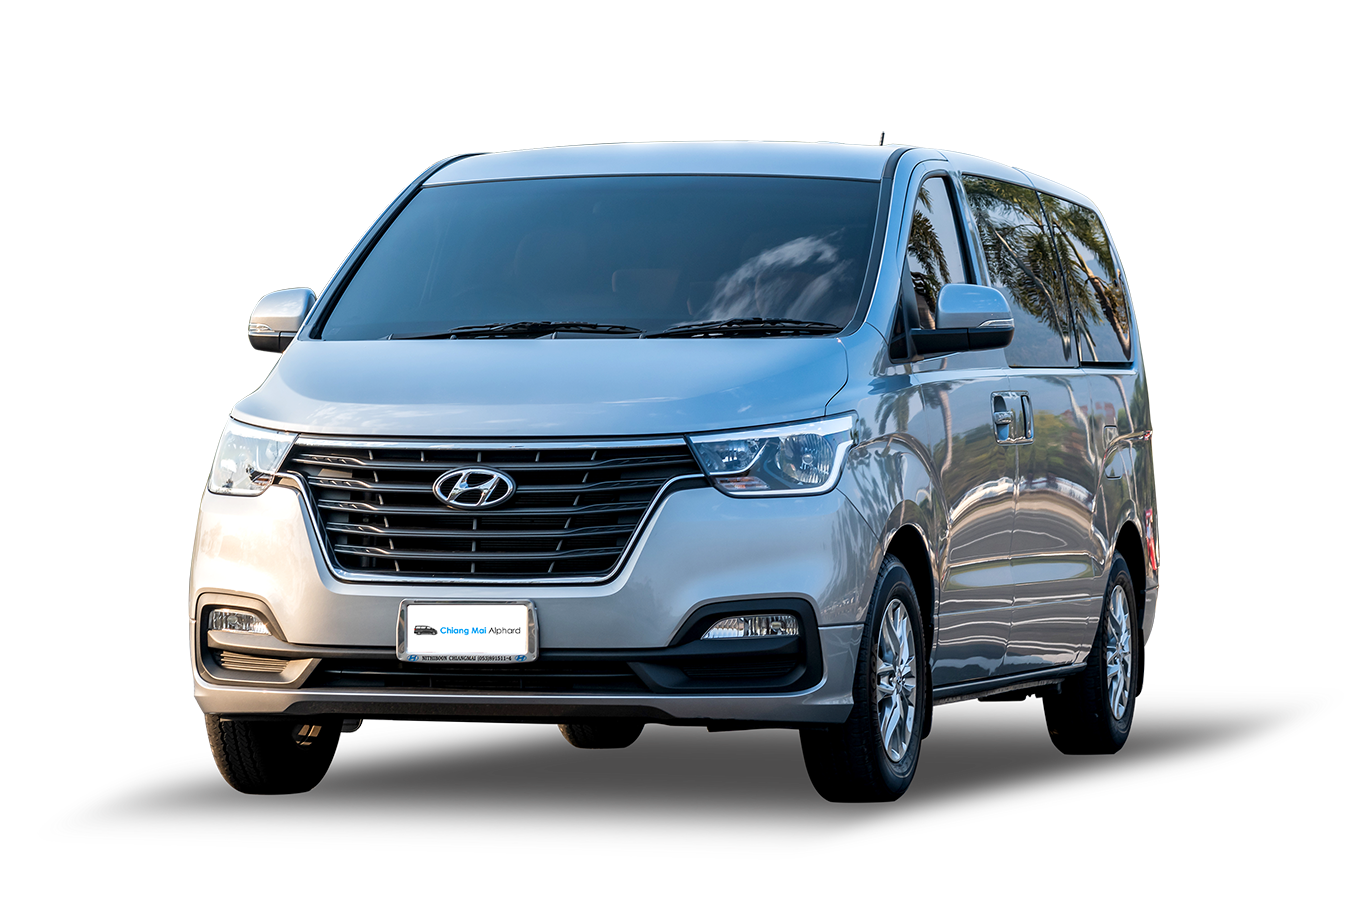 Image result for Chiang Mai car rentals